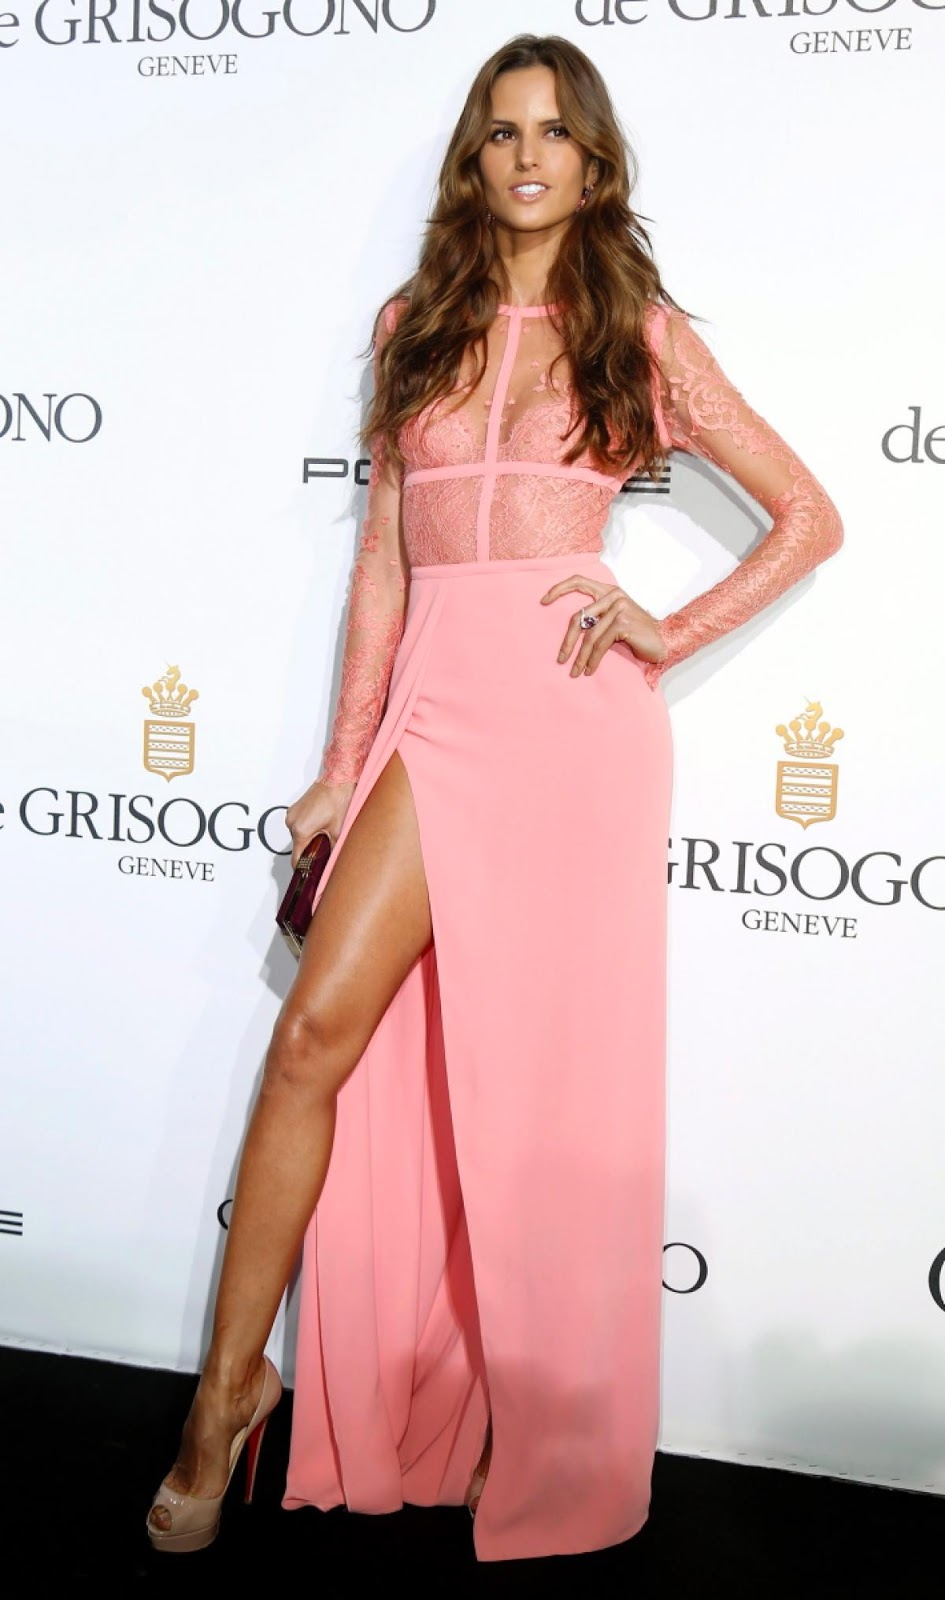 Izabel Goulart. Izabel Goulart's best articles Shared by http://victoriasecretcom.blogspot.com/. Izabel Goulart Fashion together pictures from the Victoria's Secret company products. Izabel Goulart is renowned world class photo or international. Izabel Goulart's original characteristics as the following:  1. Izabel Goulart has a skinny ideal body shape or trim.  2. Izabel Goulart has the oval face but looks pretty and charming.  3. Izabel Goulart look graceful with the model and style pieces that look full of charm, this is because Izabel Goulart has hair that is healthy and beautiful.  4. Izabel Goulart has an incredible smile once full of charm for those who see.  5. Izabel Goulart obviously has incredible beautiful eyes and look very charming once if you see something.  6. Izabel Goulart clearly has the brains and an intelligent mind, too clever, because to Izabel Goulart education is very important for the future.  7. Izabel Goulart is women who have a personal interest and also good natured once on everyone. Izabel Goulart is a Victoria's Secret model photos of Izabel Goulart, for Victoria's Secret is one of the companies that provides a future for him and his family at this time. Izabel Goulart looks lovely and sweet time using products from Victoria's Secret, do you not believe Izabel Goulart if looks like Goddess of beauty while using products from Victoria's Secret.